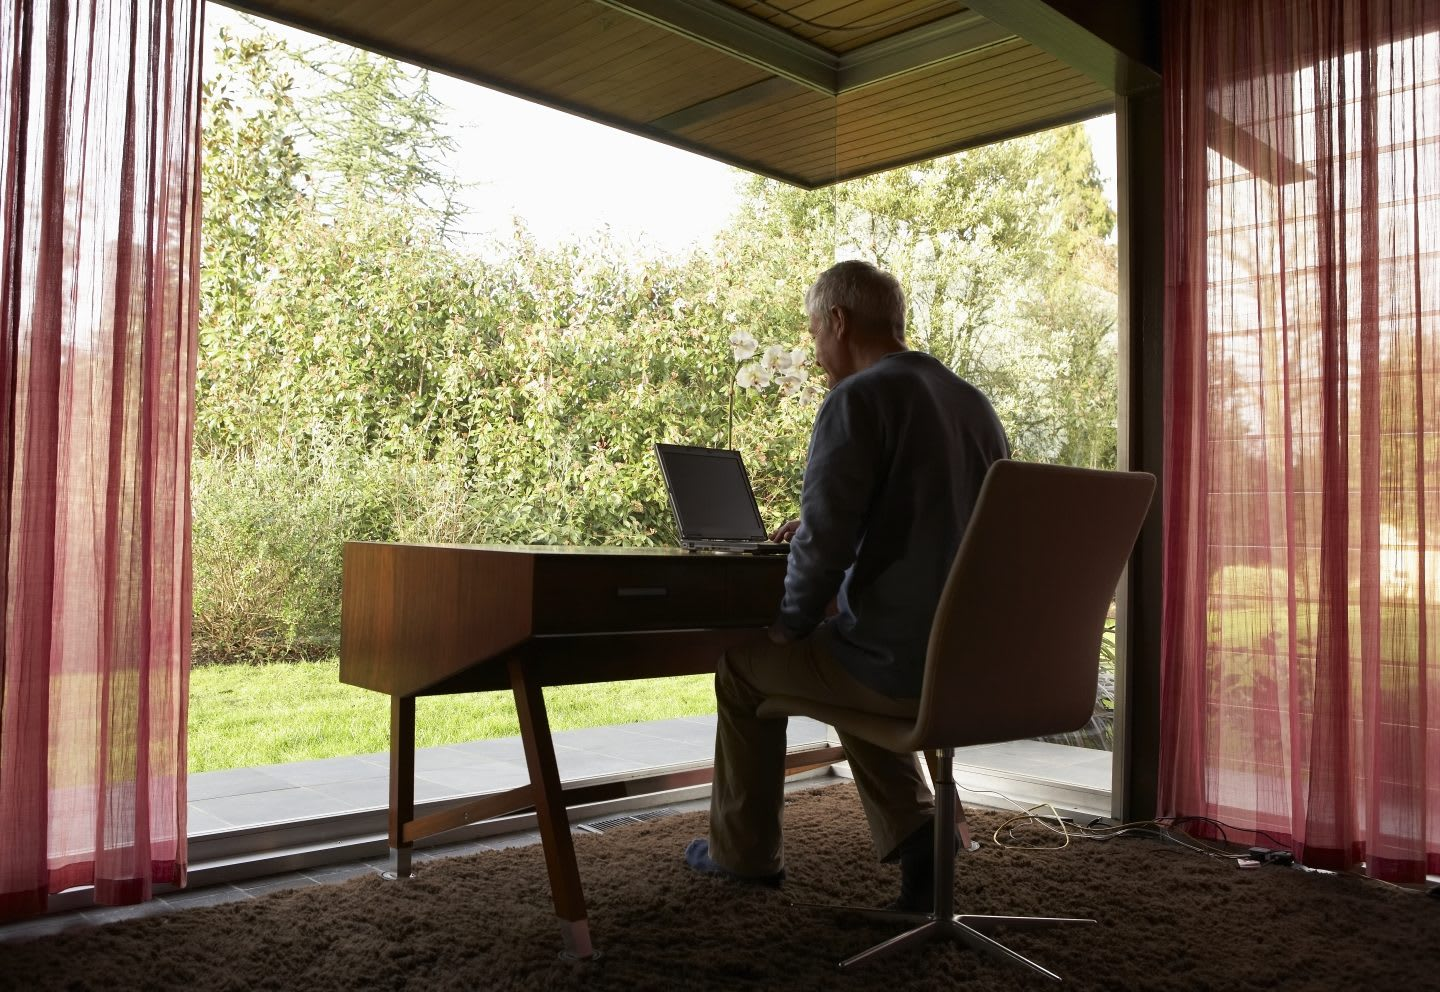 Man working at desk in front of window. The ideal space to let his mind wander.